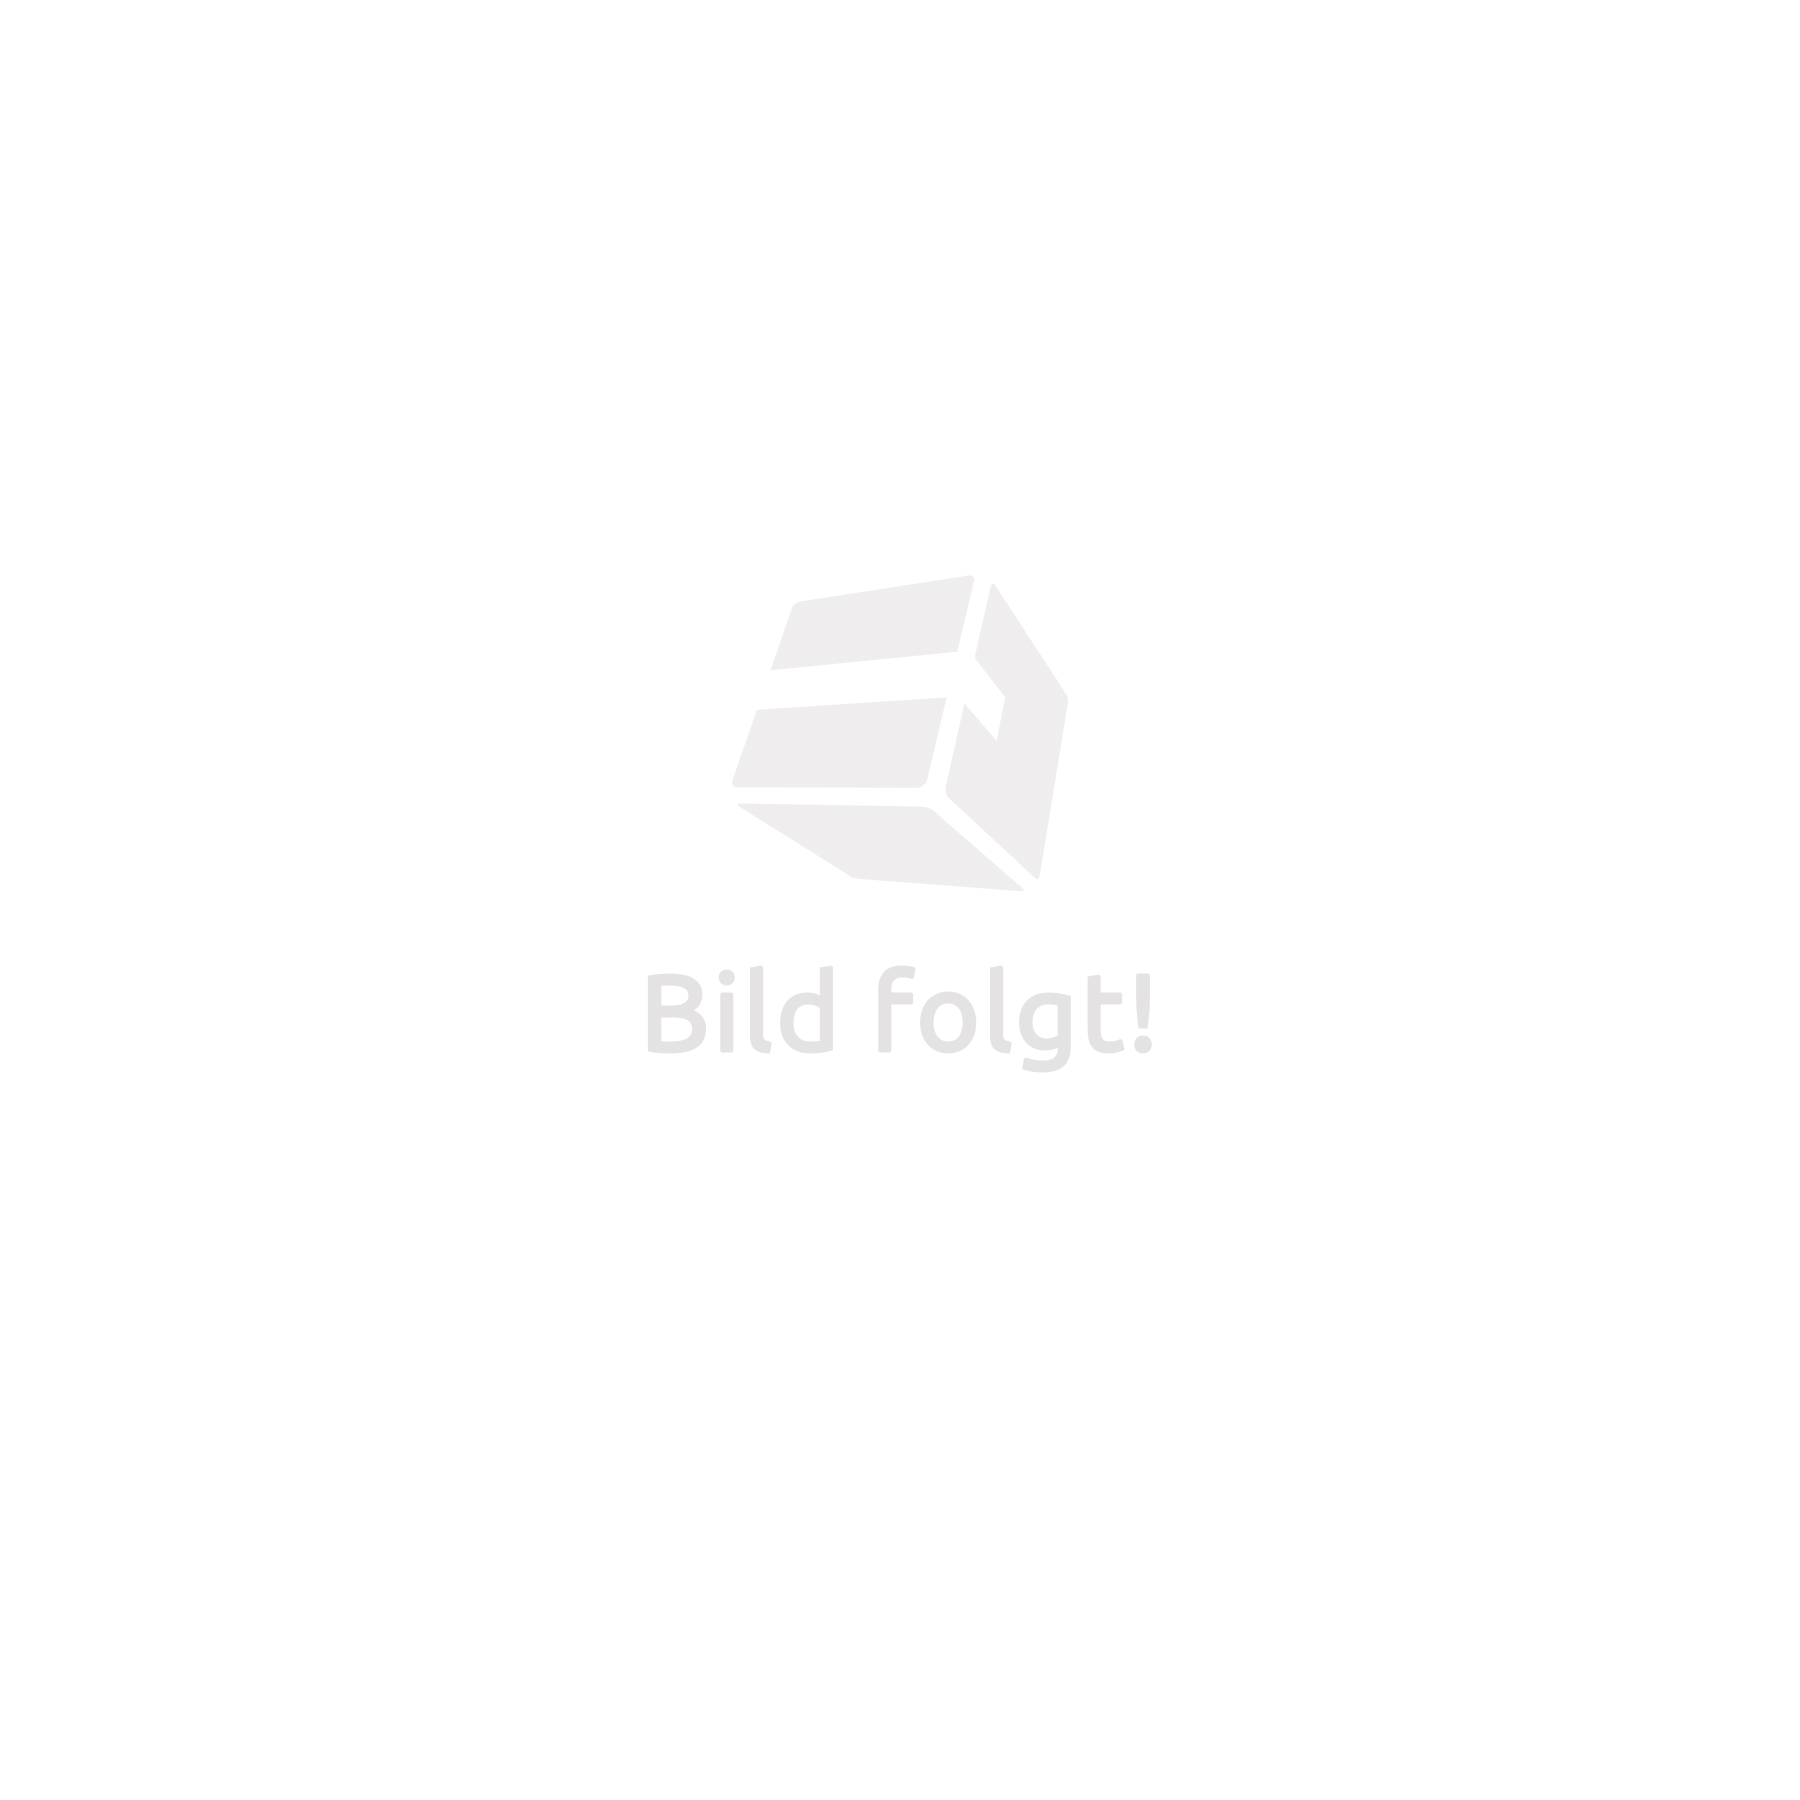 Chaise longue de jardin, Transat, Multi positions, Pliable